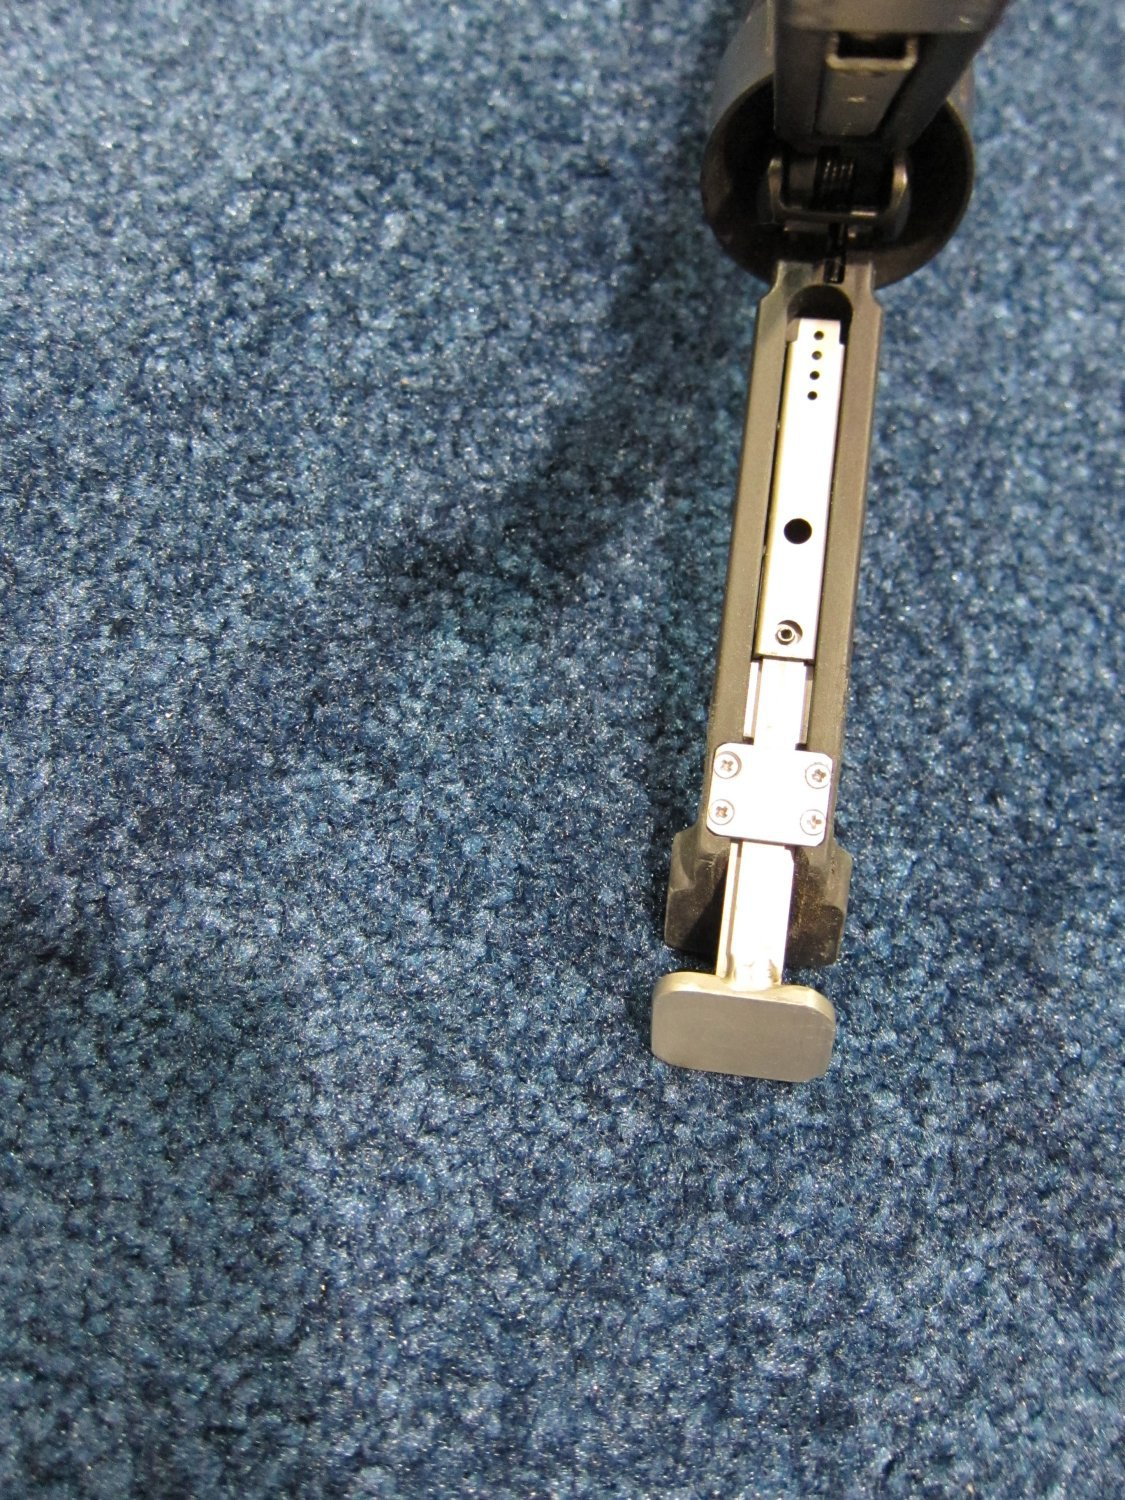 shot show 2010 grip pod system with extendable legs 12 <!  :en  >Grip Pod System (GPS02 Military Model) Gets Independently Extendable Legs!<!  :  >